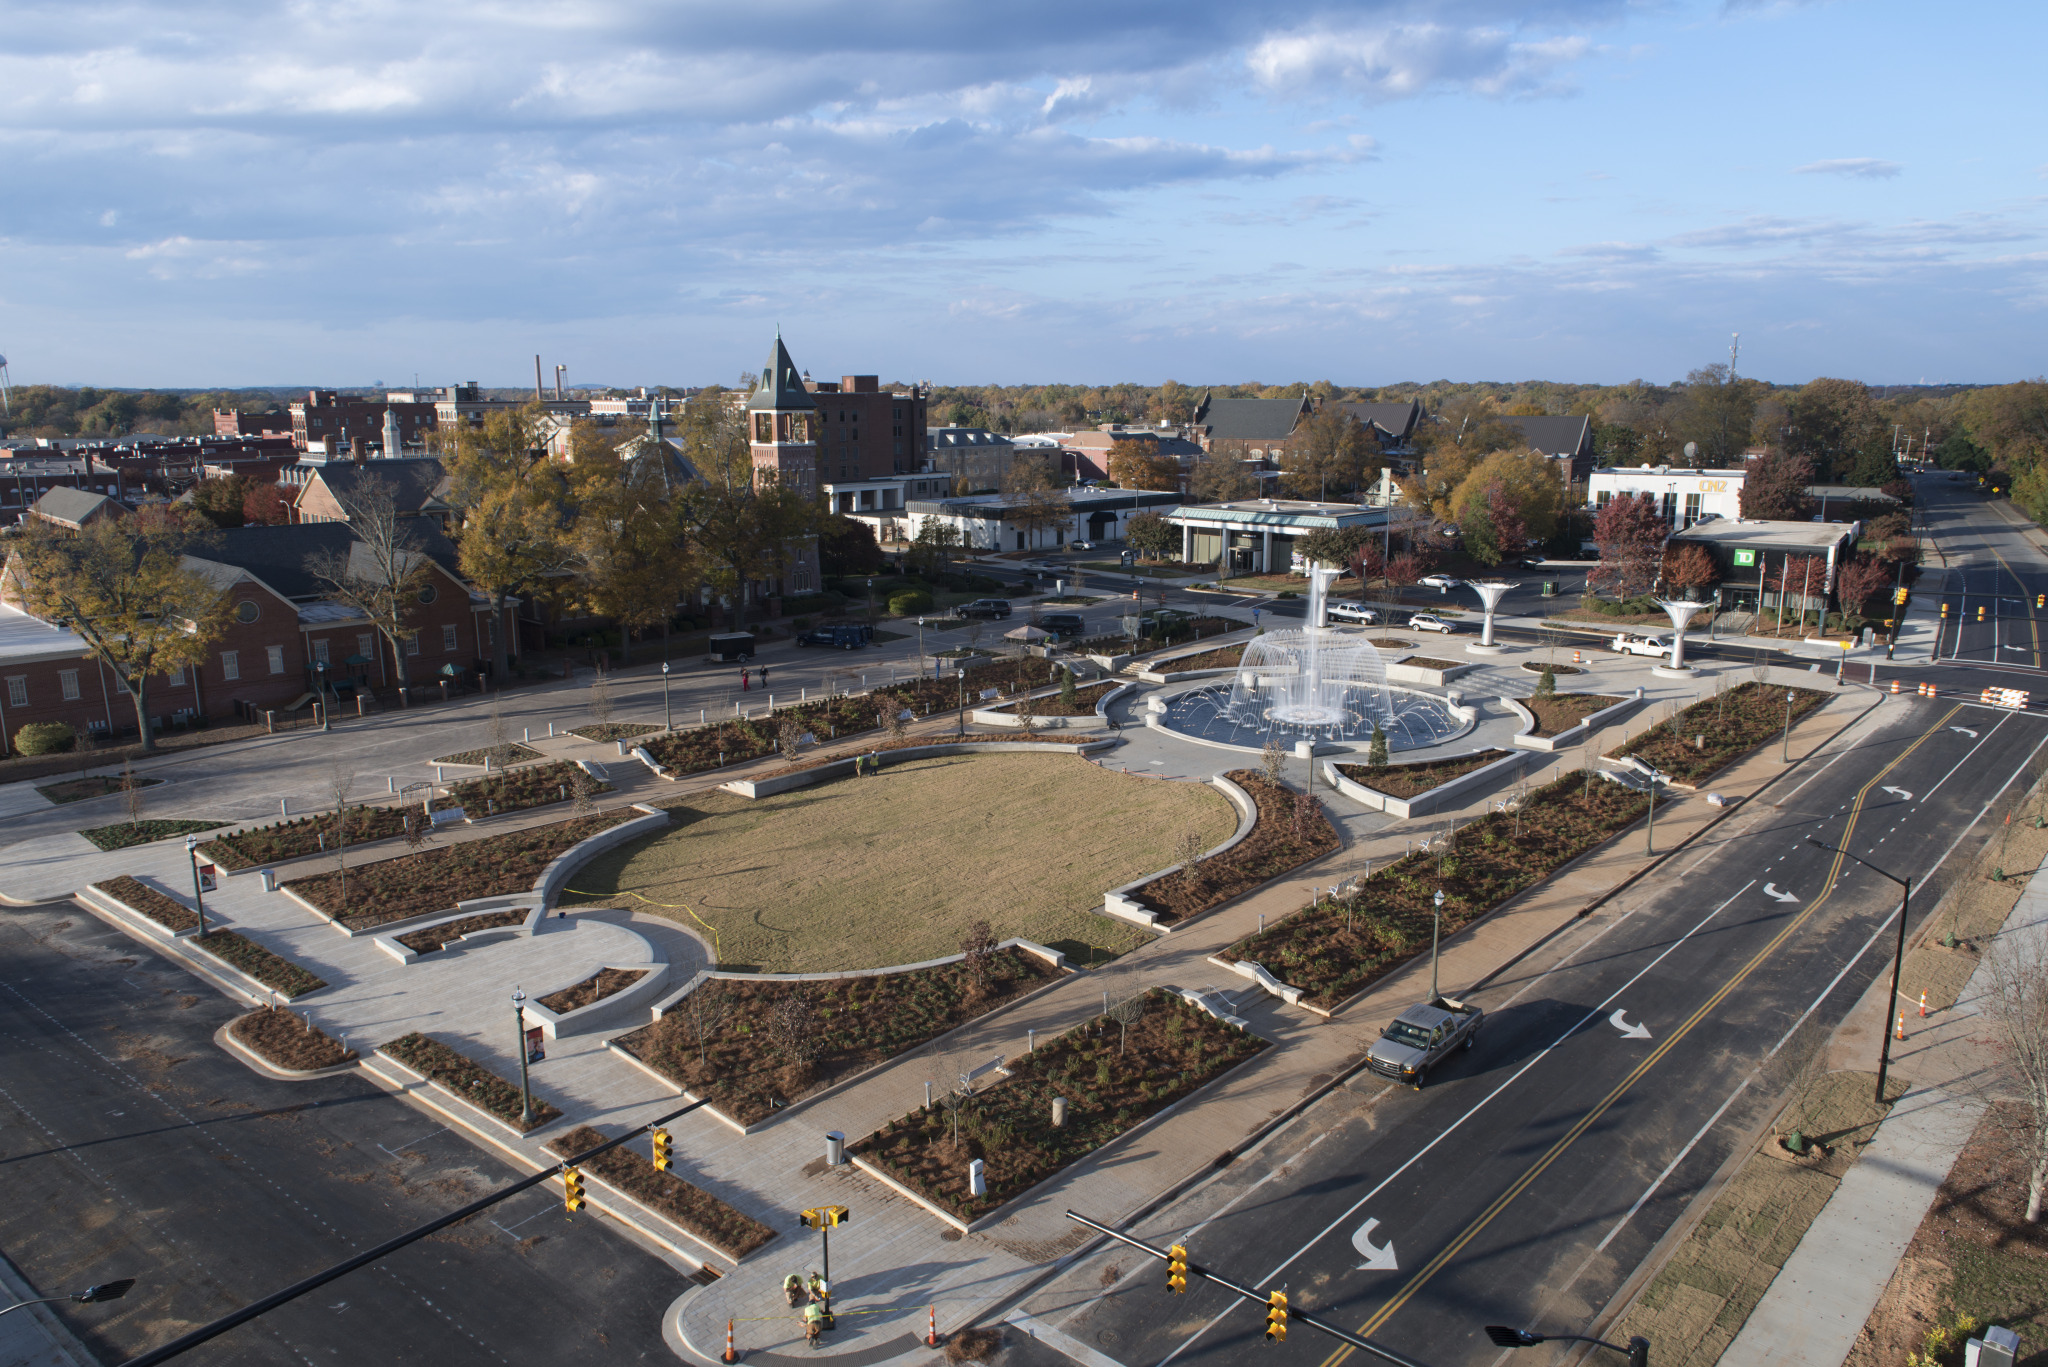 rock hill Rock hill schools is committed to providing equal access to educational and employment opportunities regardless of race, color, religion, national origin, disability, pregnancy, age, sex.